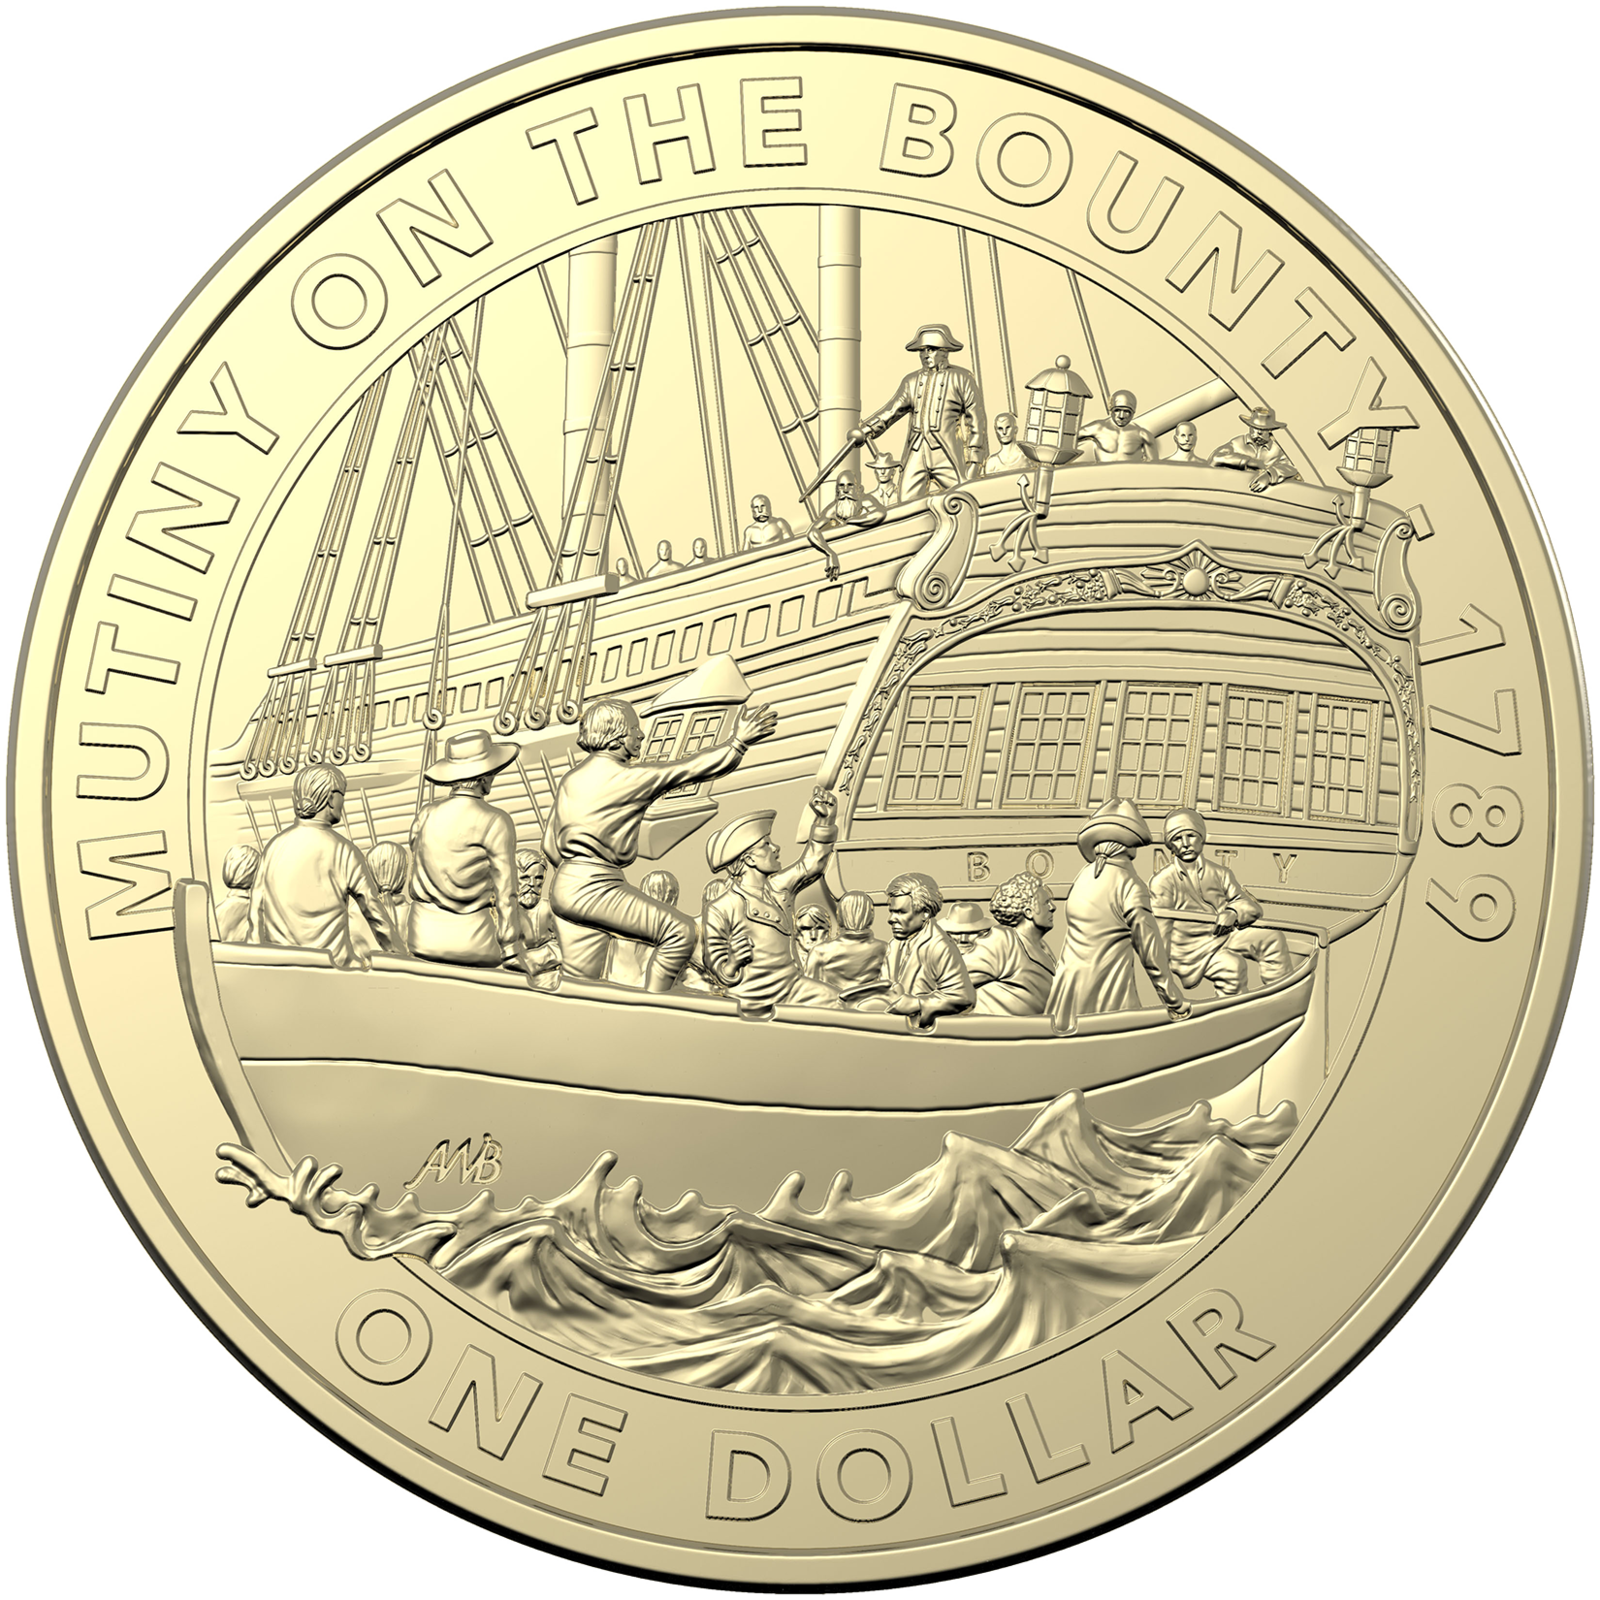 2019 $1 Mutiny and Rebellion – The Bounty 1789 Uncirculated Coin